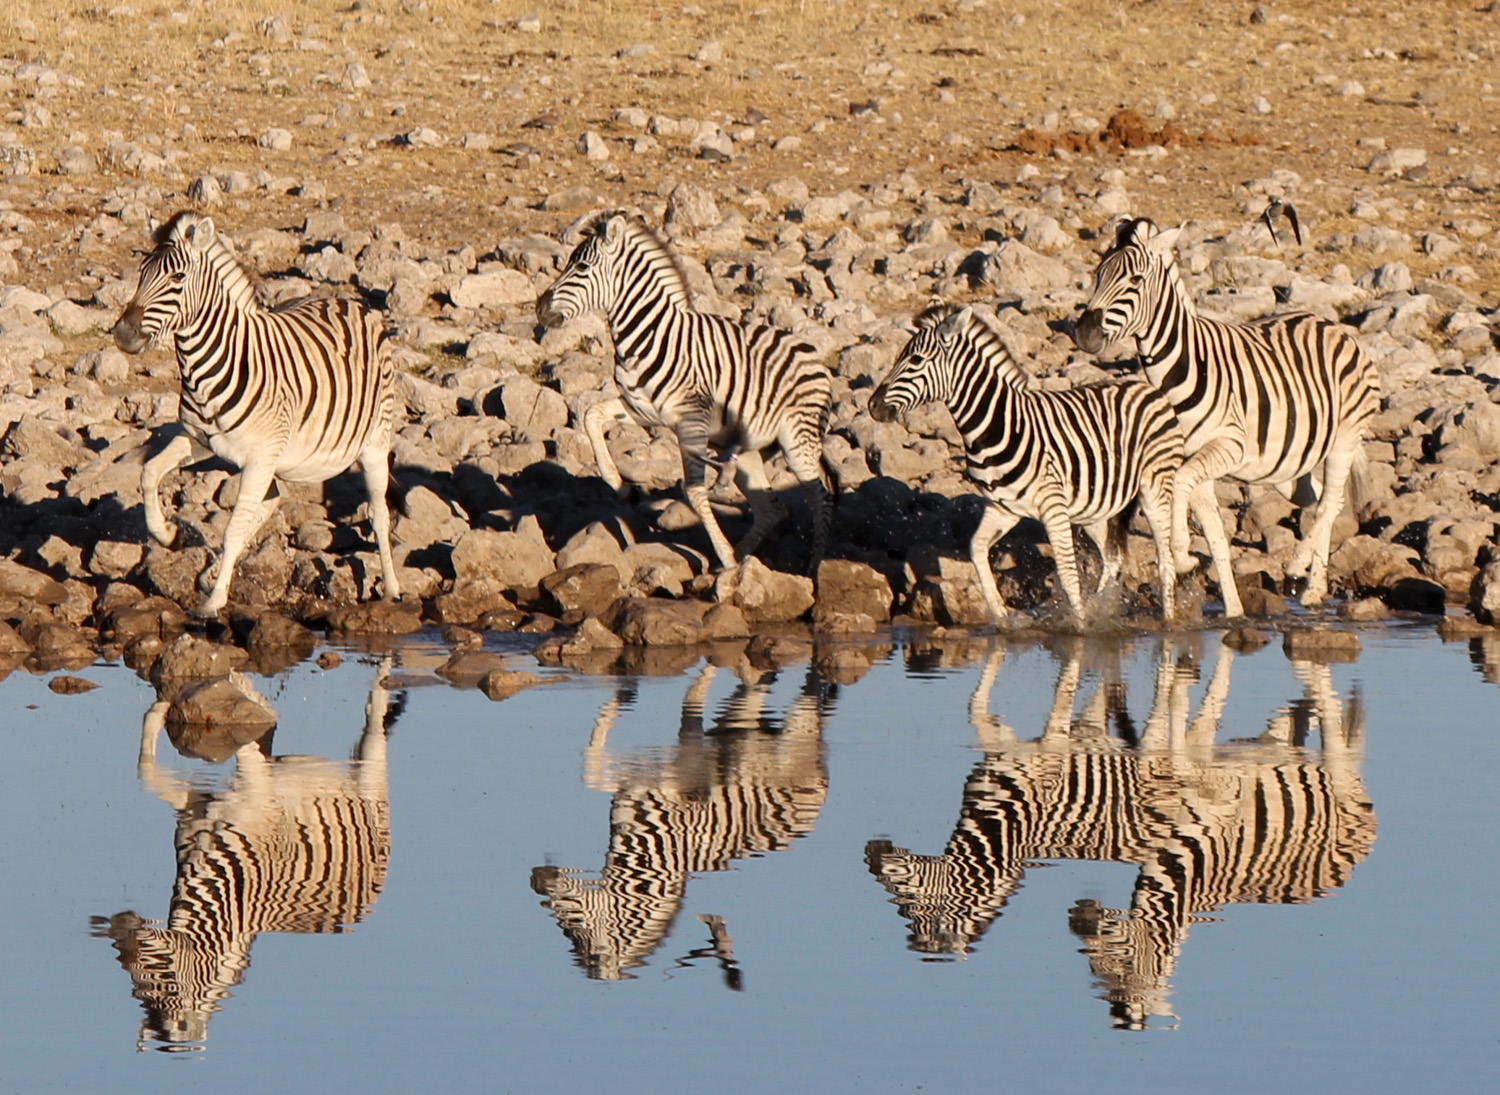 Zebras at a water hole in Etosha National Park.